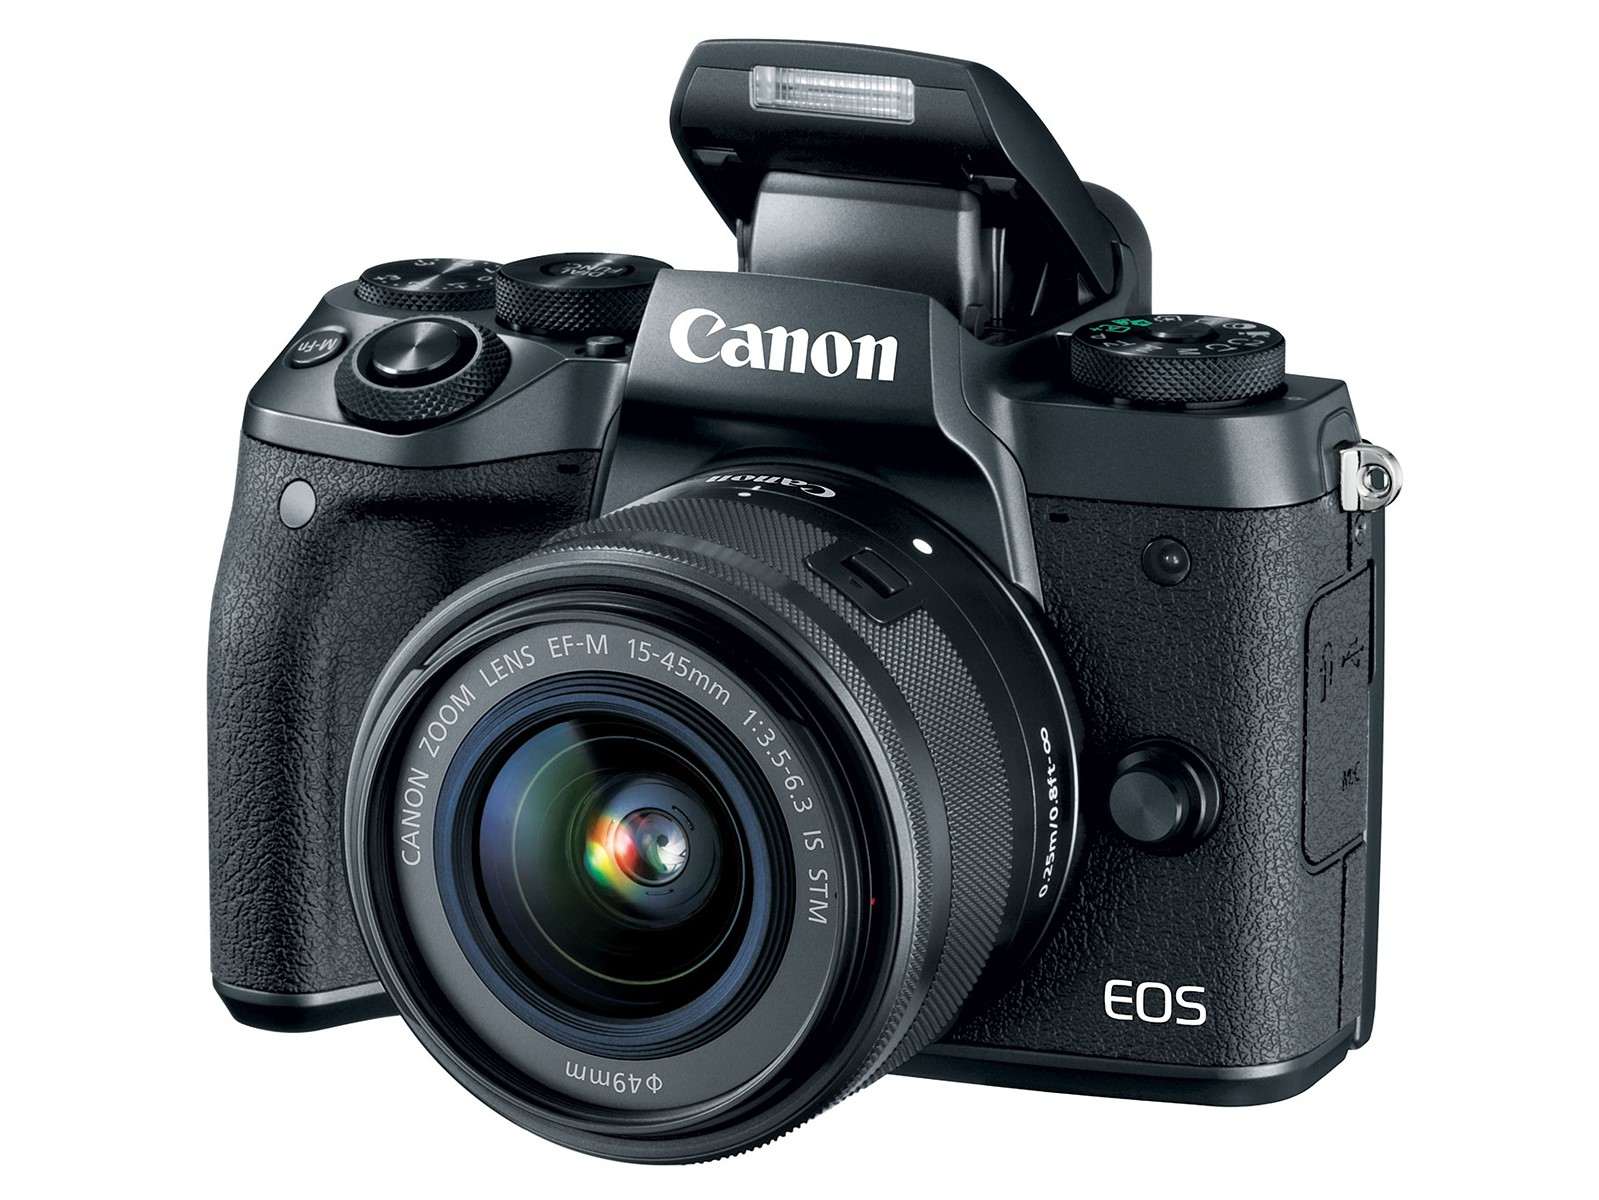 Canon EOS M5 announced with 24MP Dual Pixel AF sensor and built-in EVF